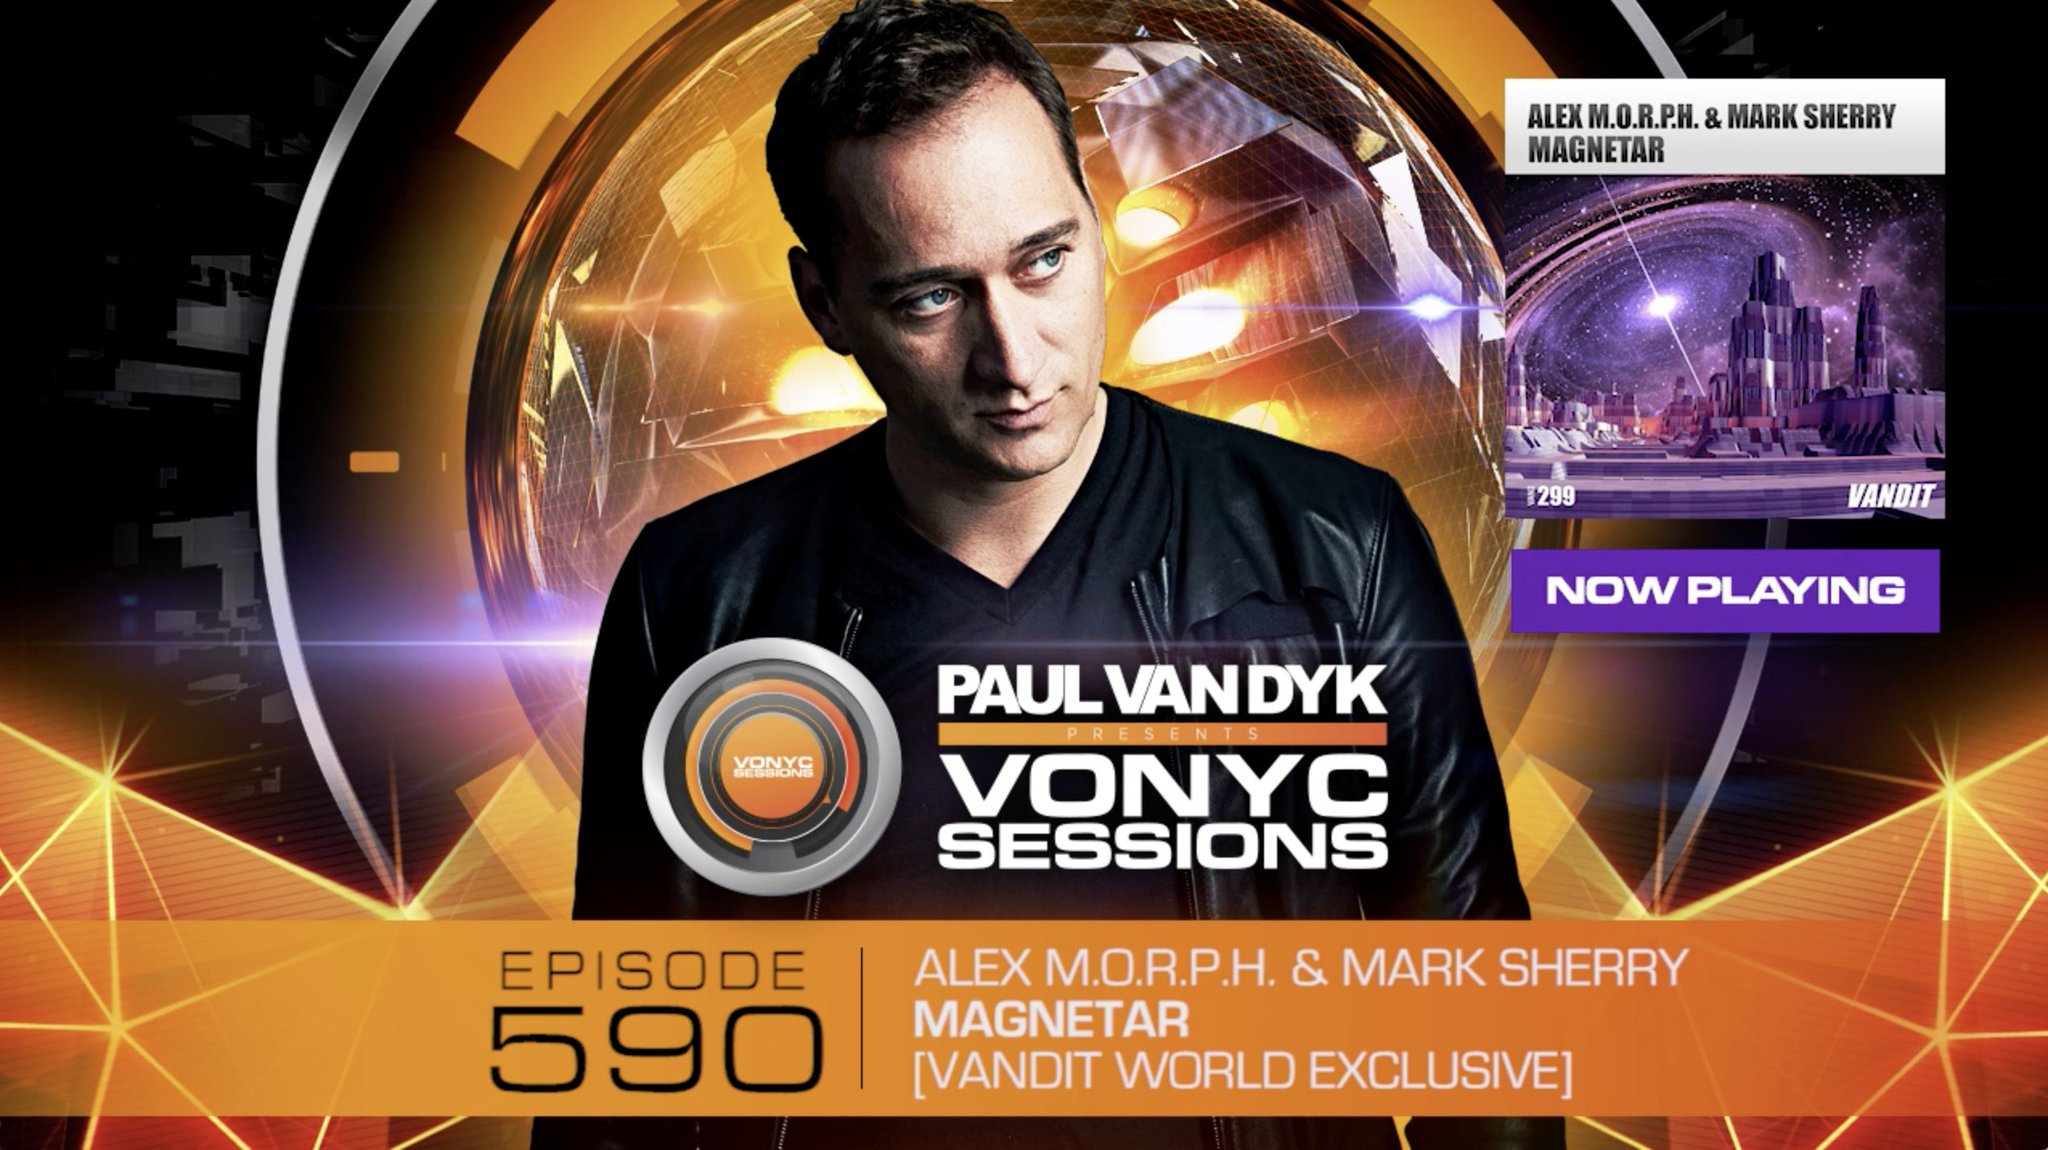 Welcome to VONYC Sessions 590 - The Trance Chronicles! Now live on https://t.co/v0LuX7UfIe #PvDVS590 https://t.co/FEu6bVNOHV